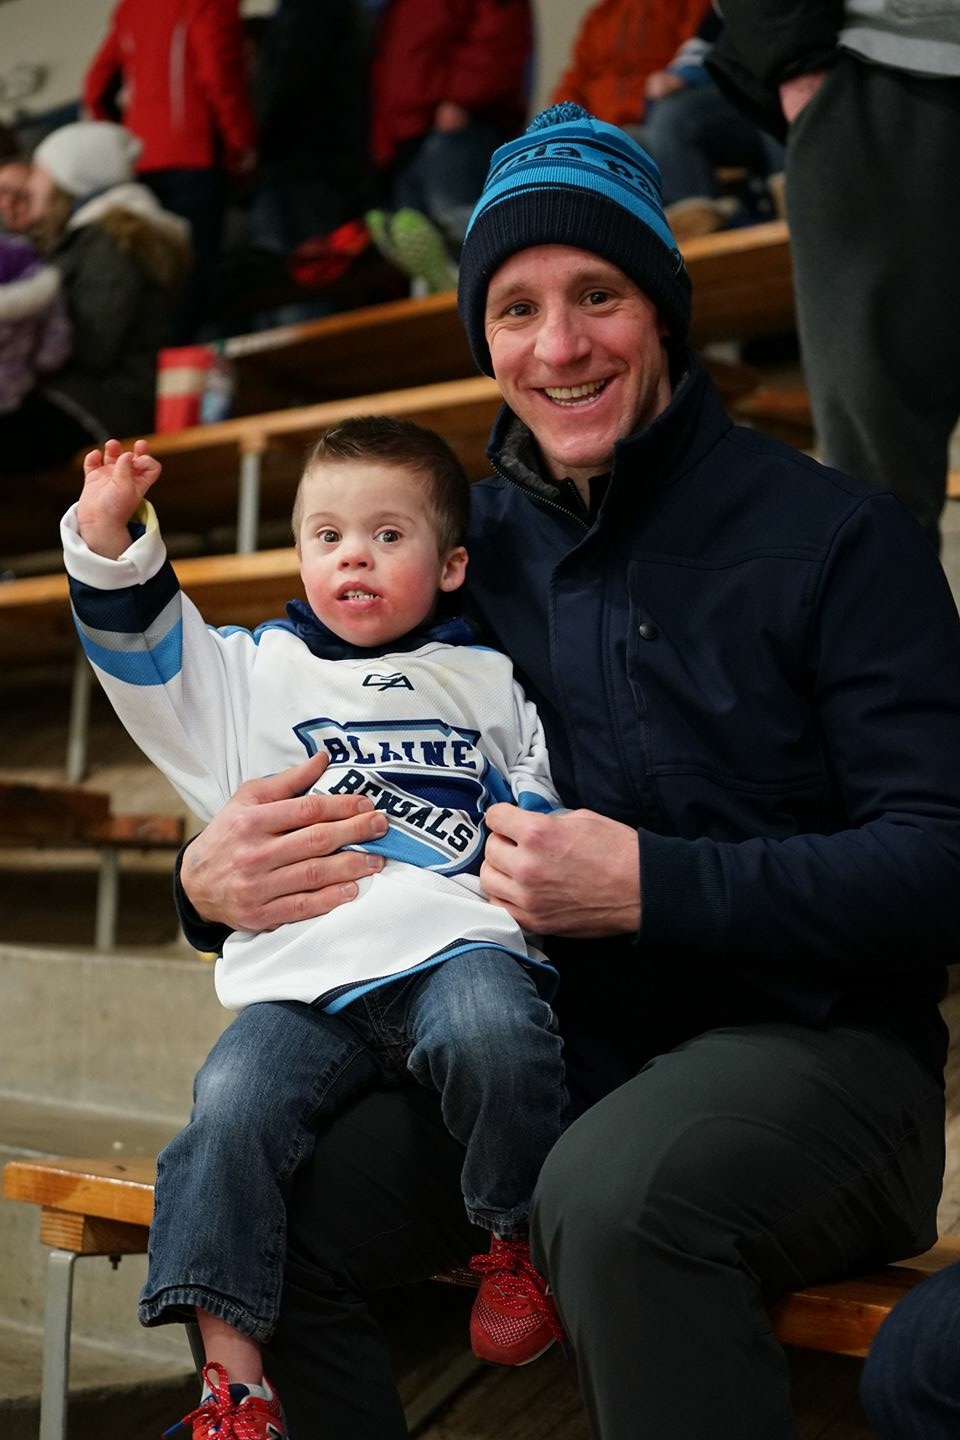 Jack and Andrew cheering on Chris' Blaine Bengal hockey team